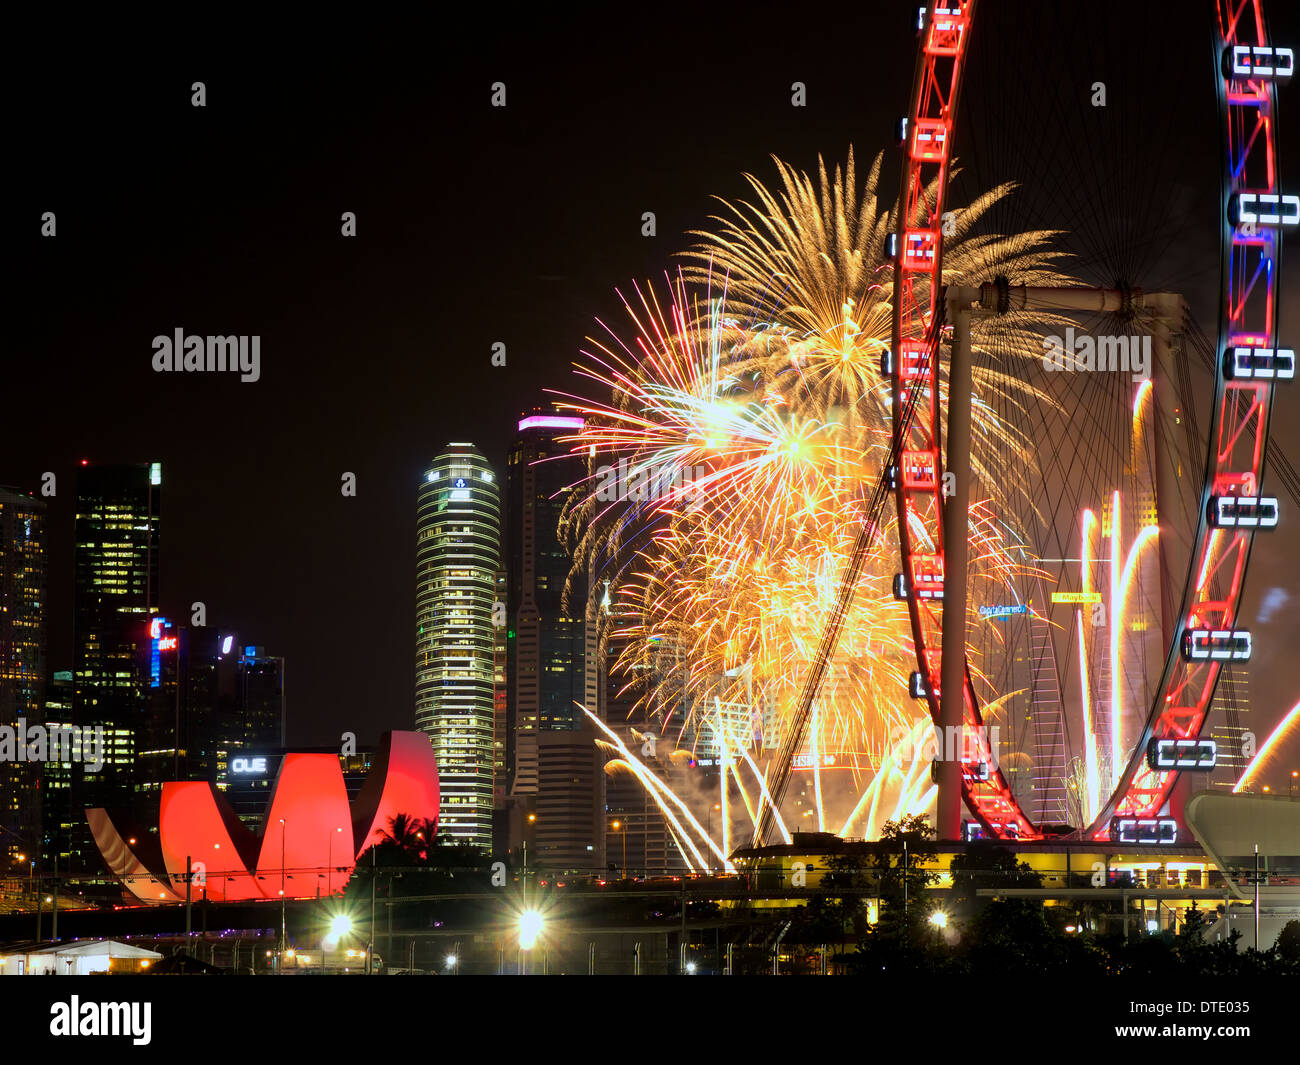 stock photo view of marina bay area from bay east garden during singapores national day celebration with fireworks display